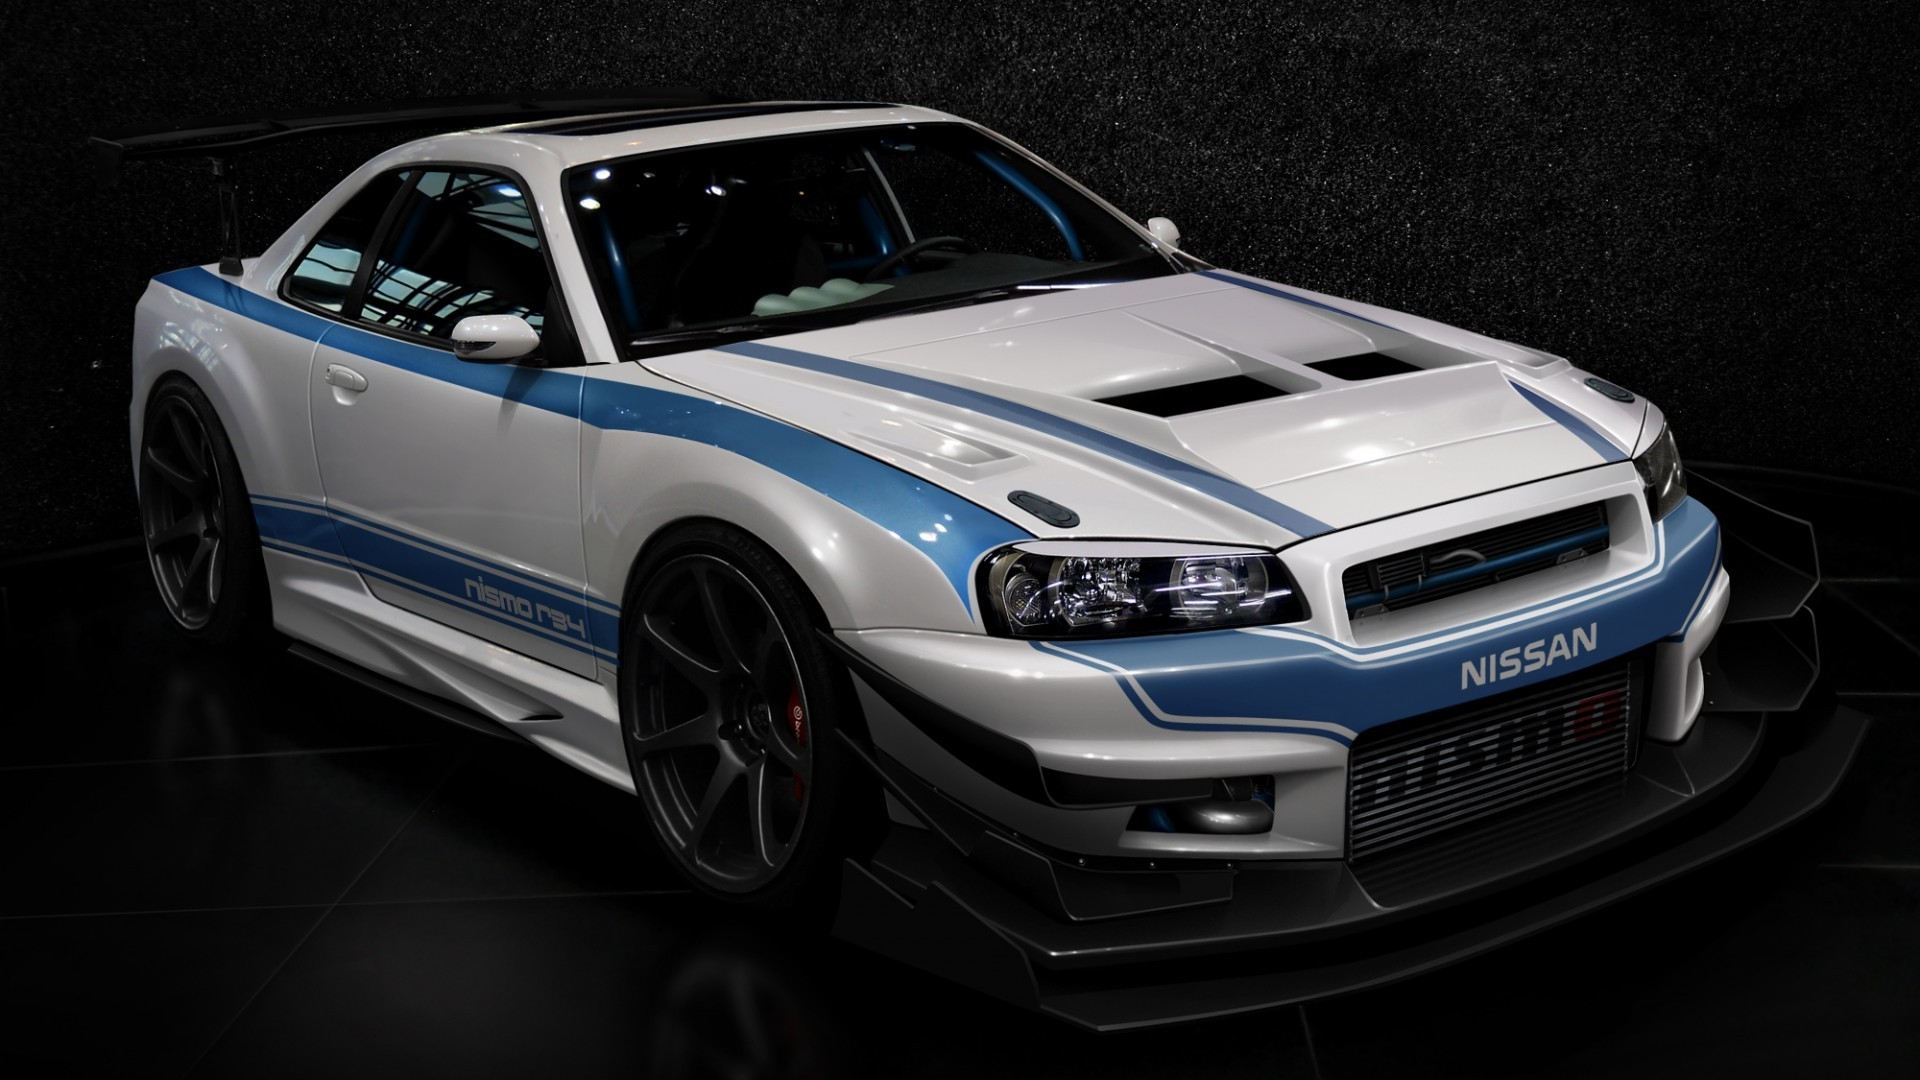 cars design tuning tuned nissan skyline r34 gt r wallpaper. Black Bedroom Furniture Sets. Home Design Ideas